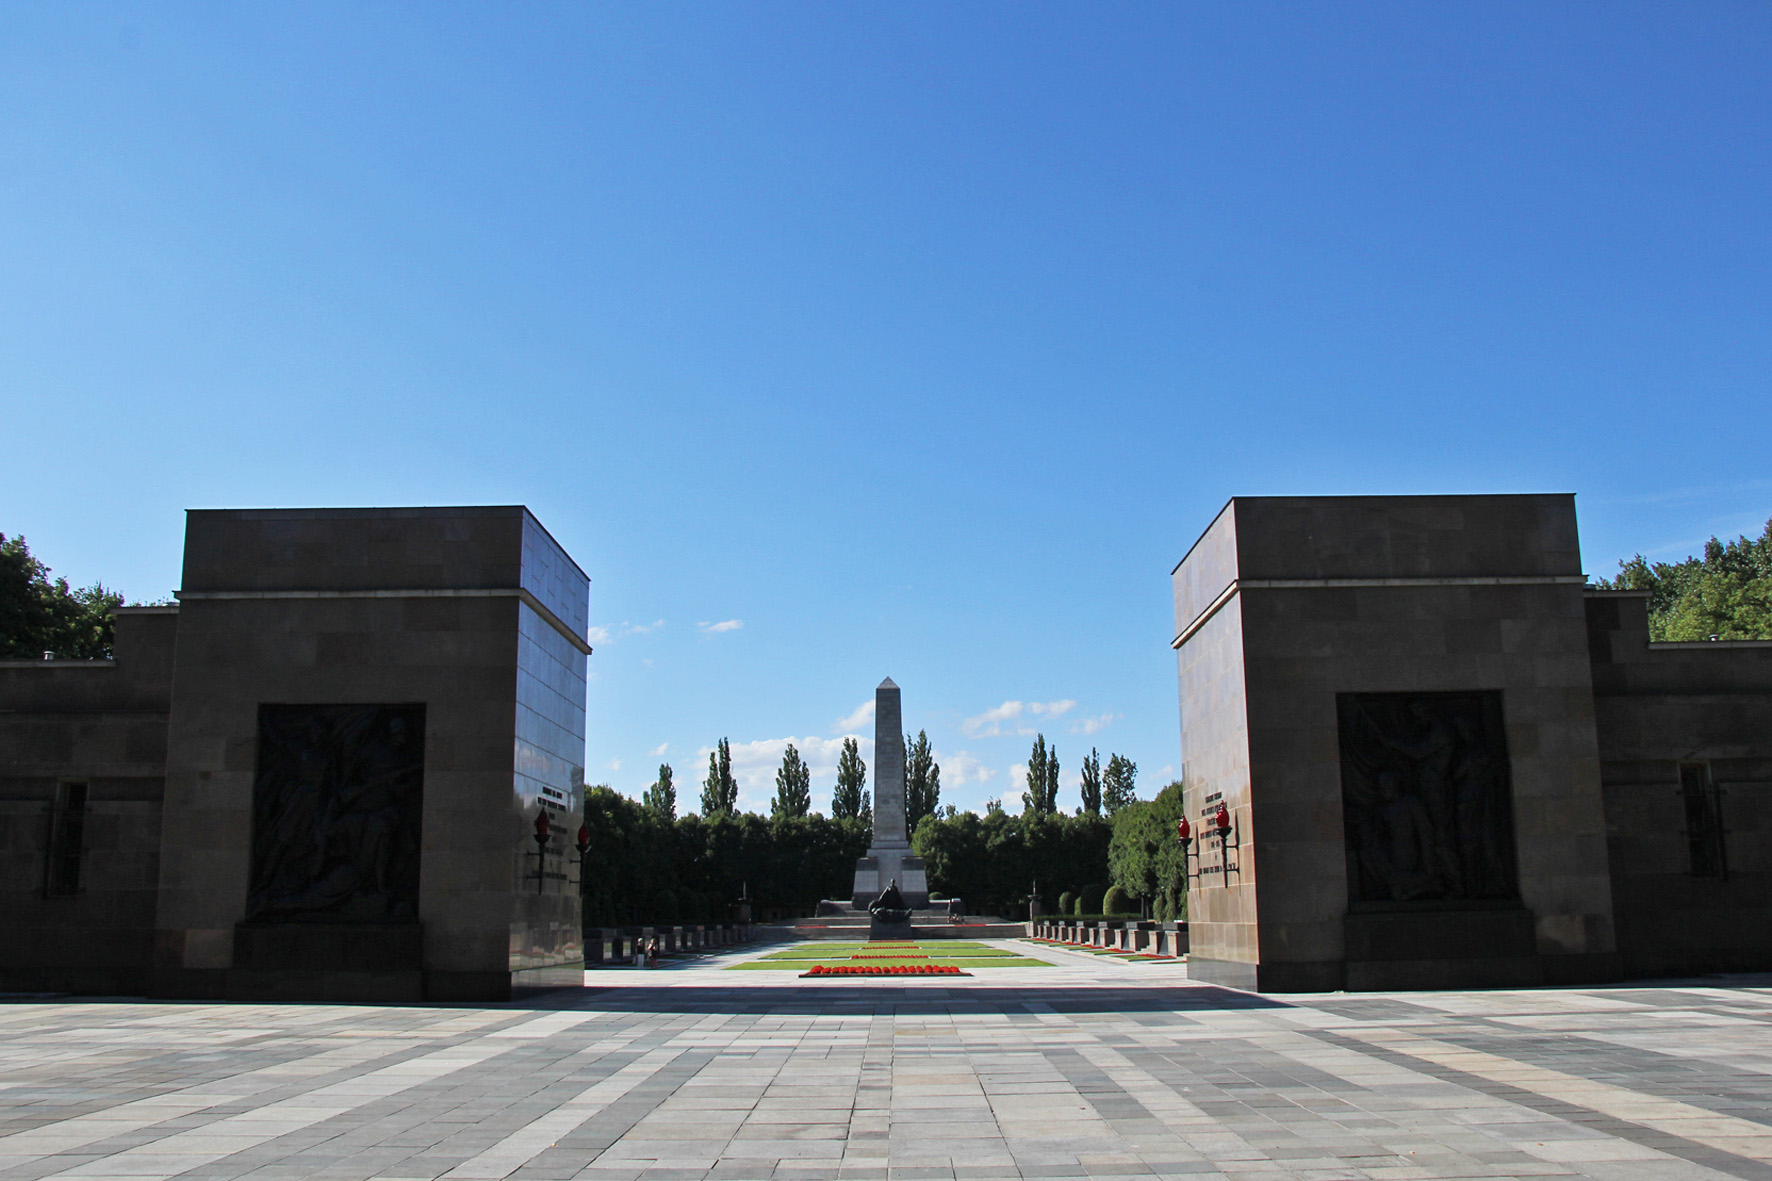 Soviet Memorial in Schönholzer Heide in Berlin 002